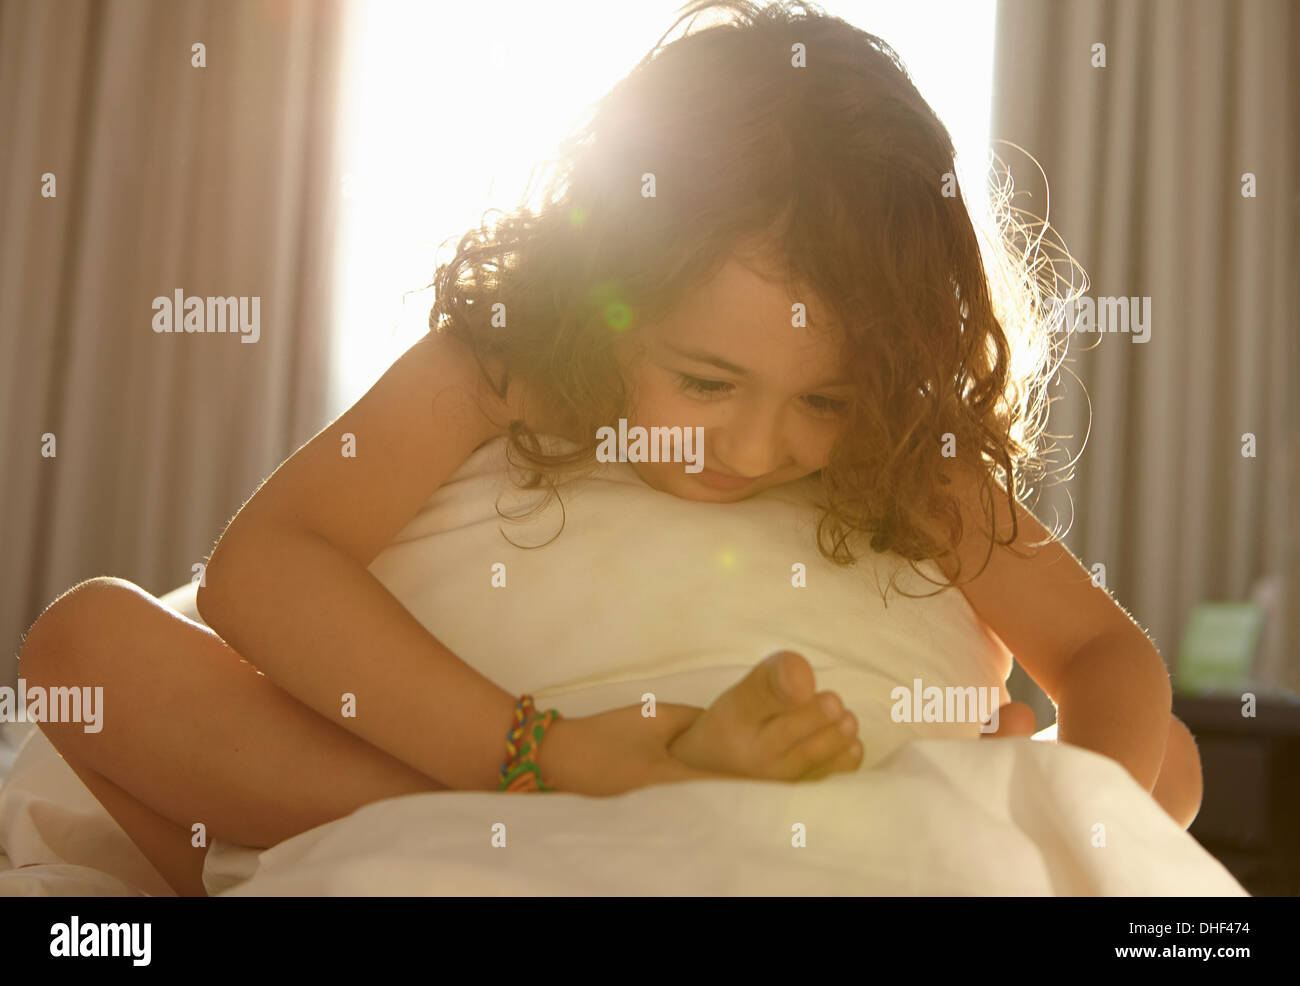 Girl on bed holding foot Photo Stock